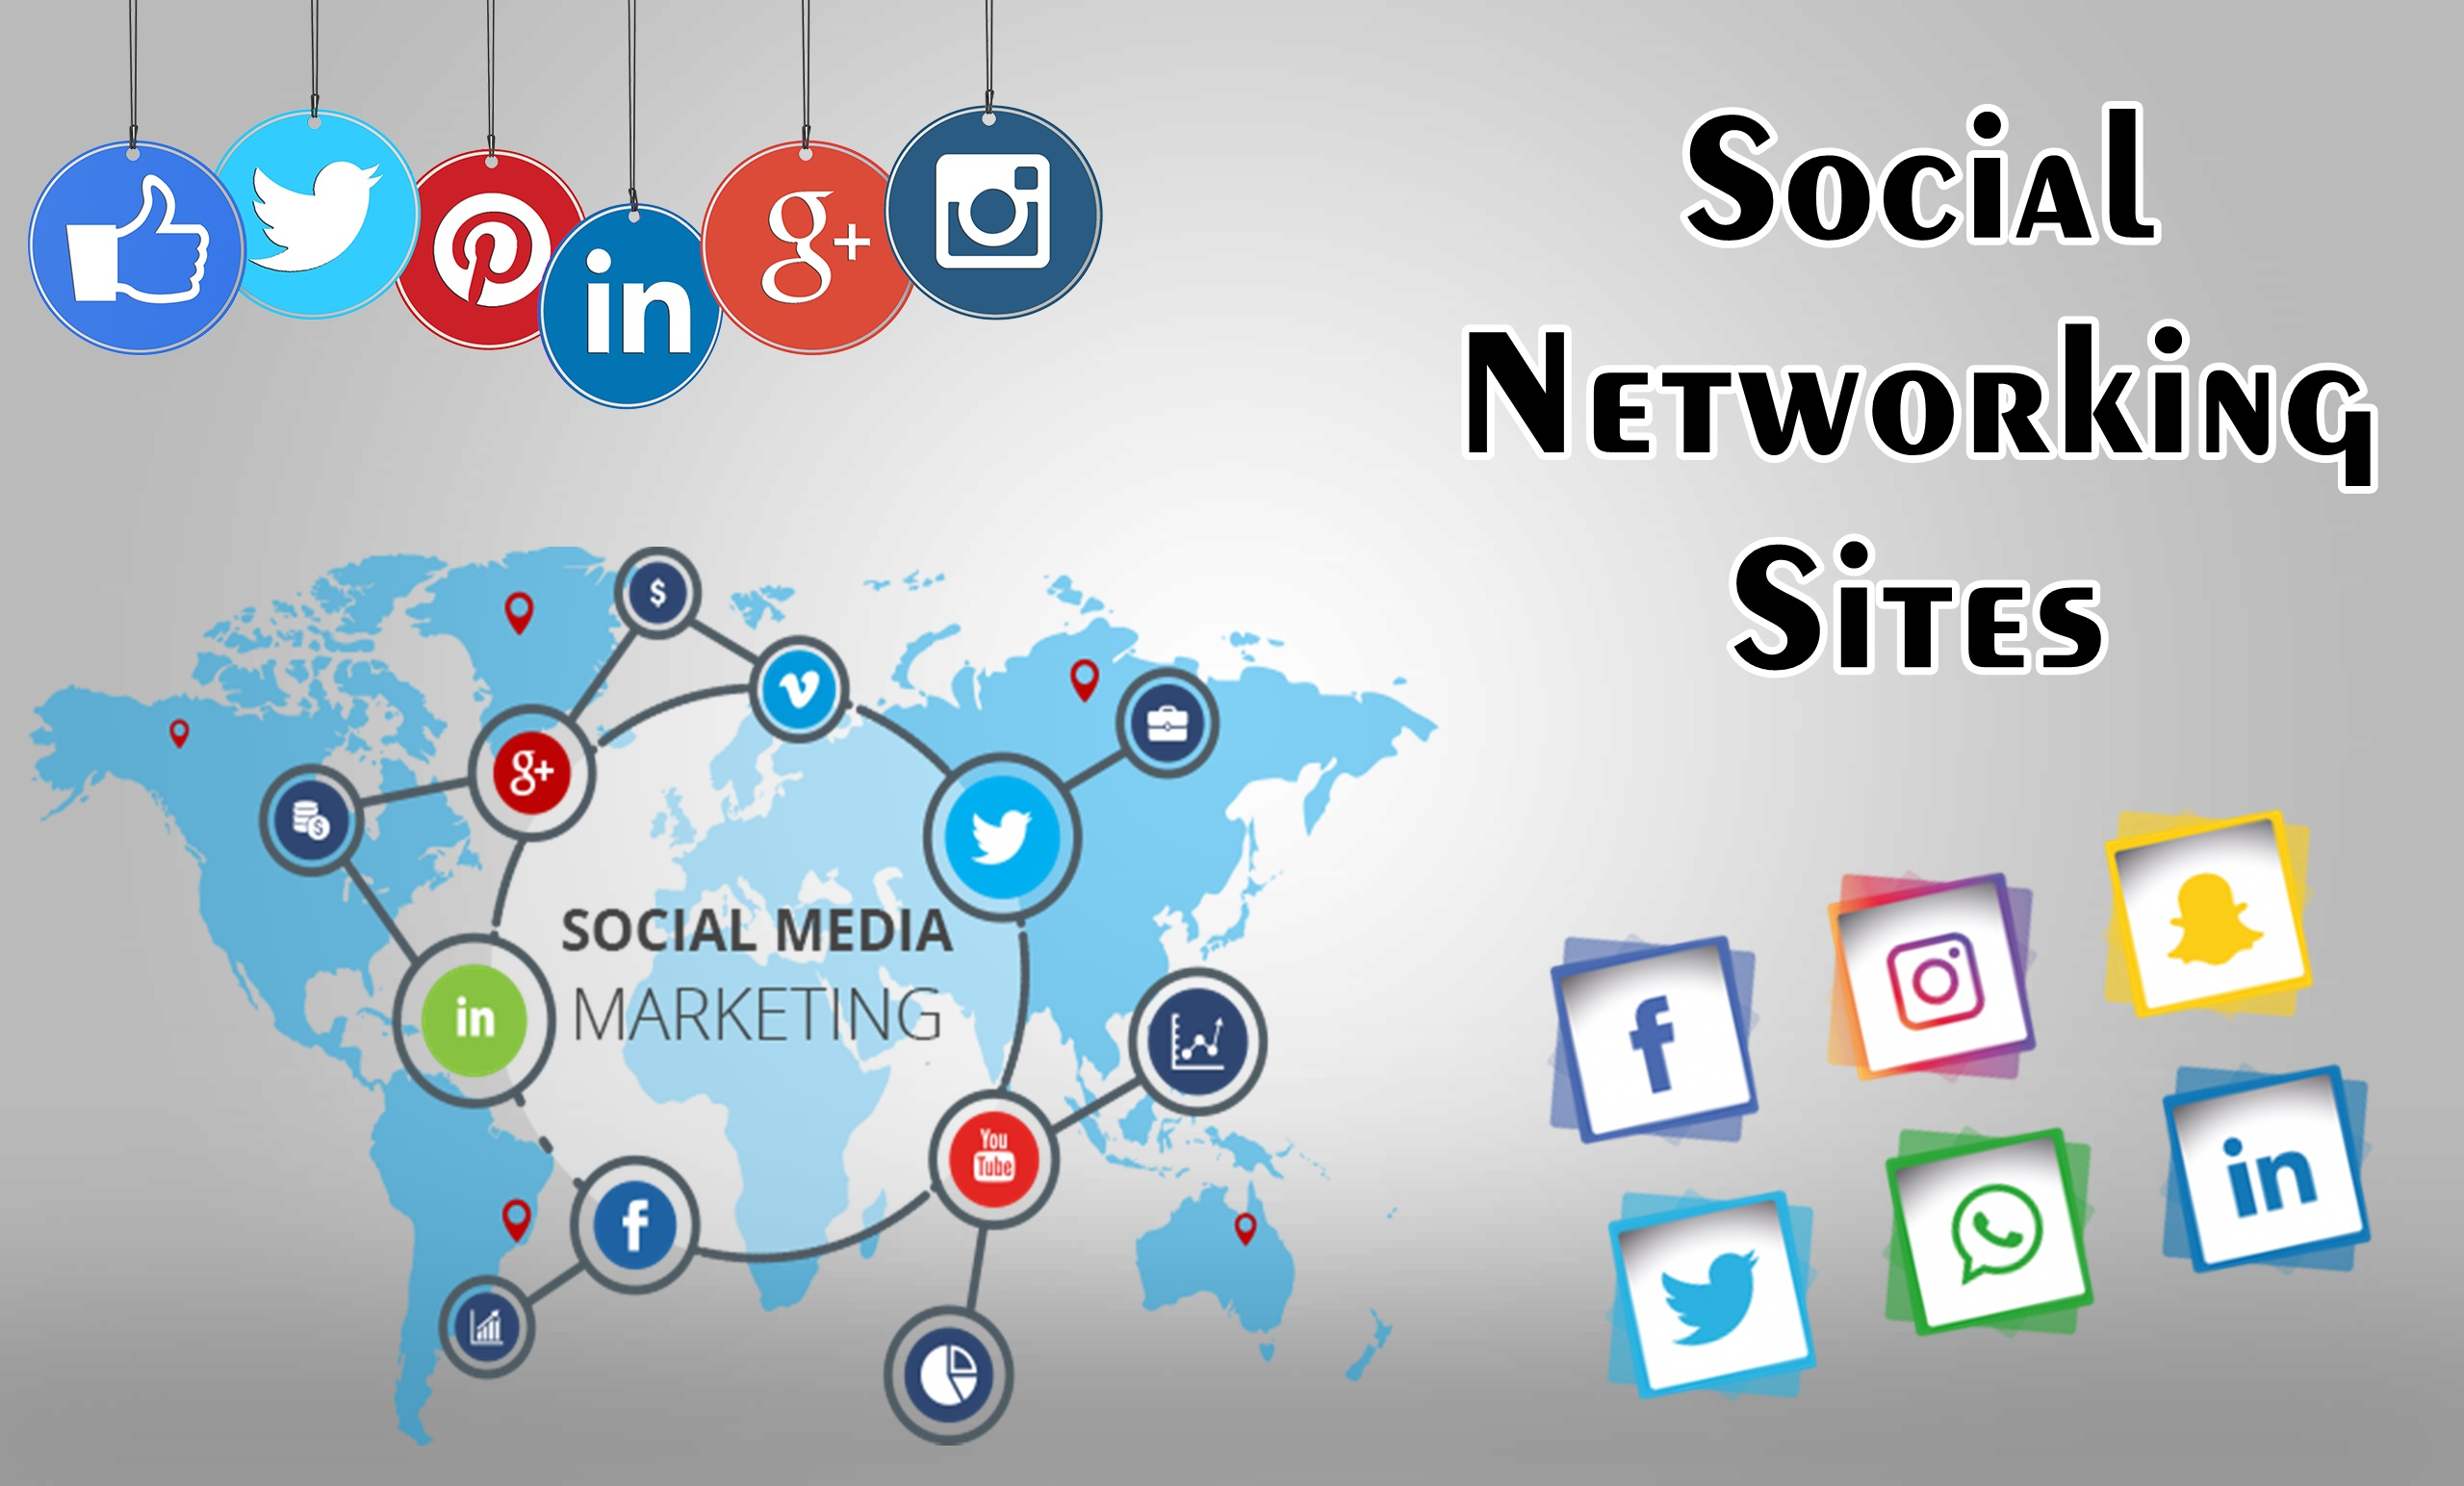 sites Social networking sex